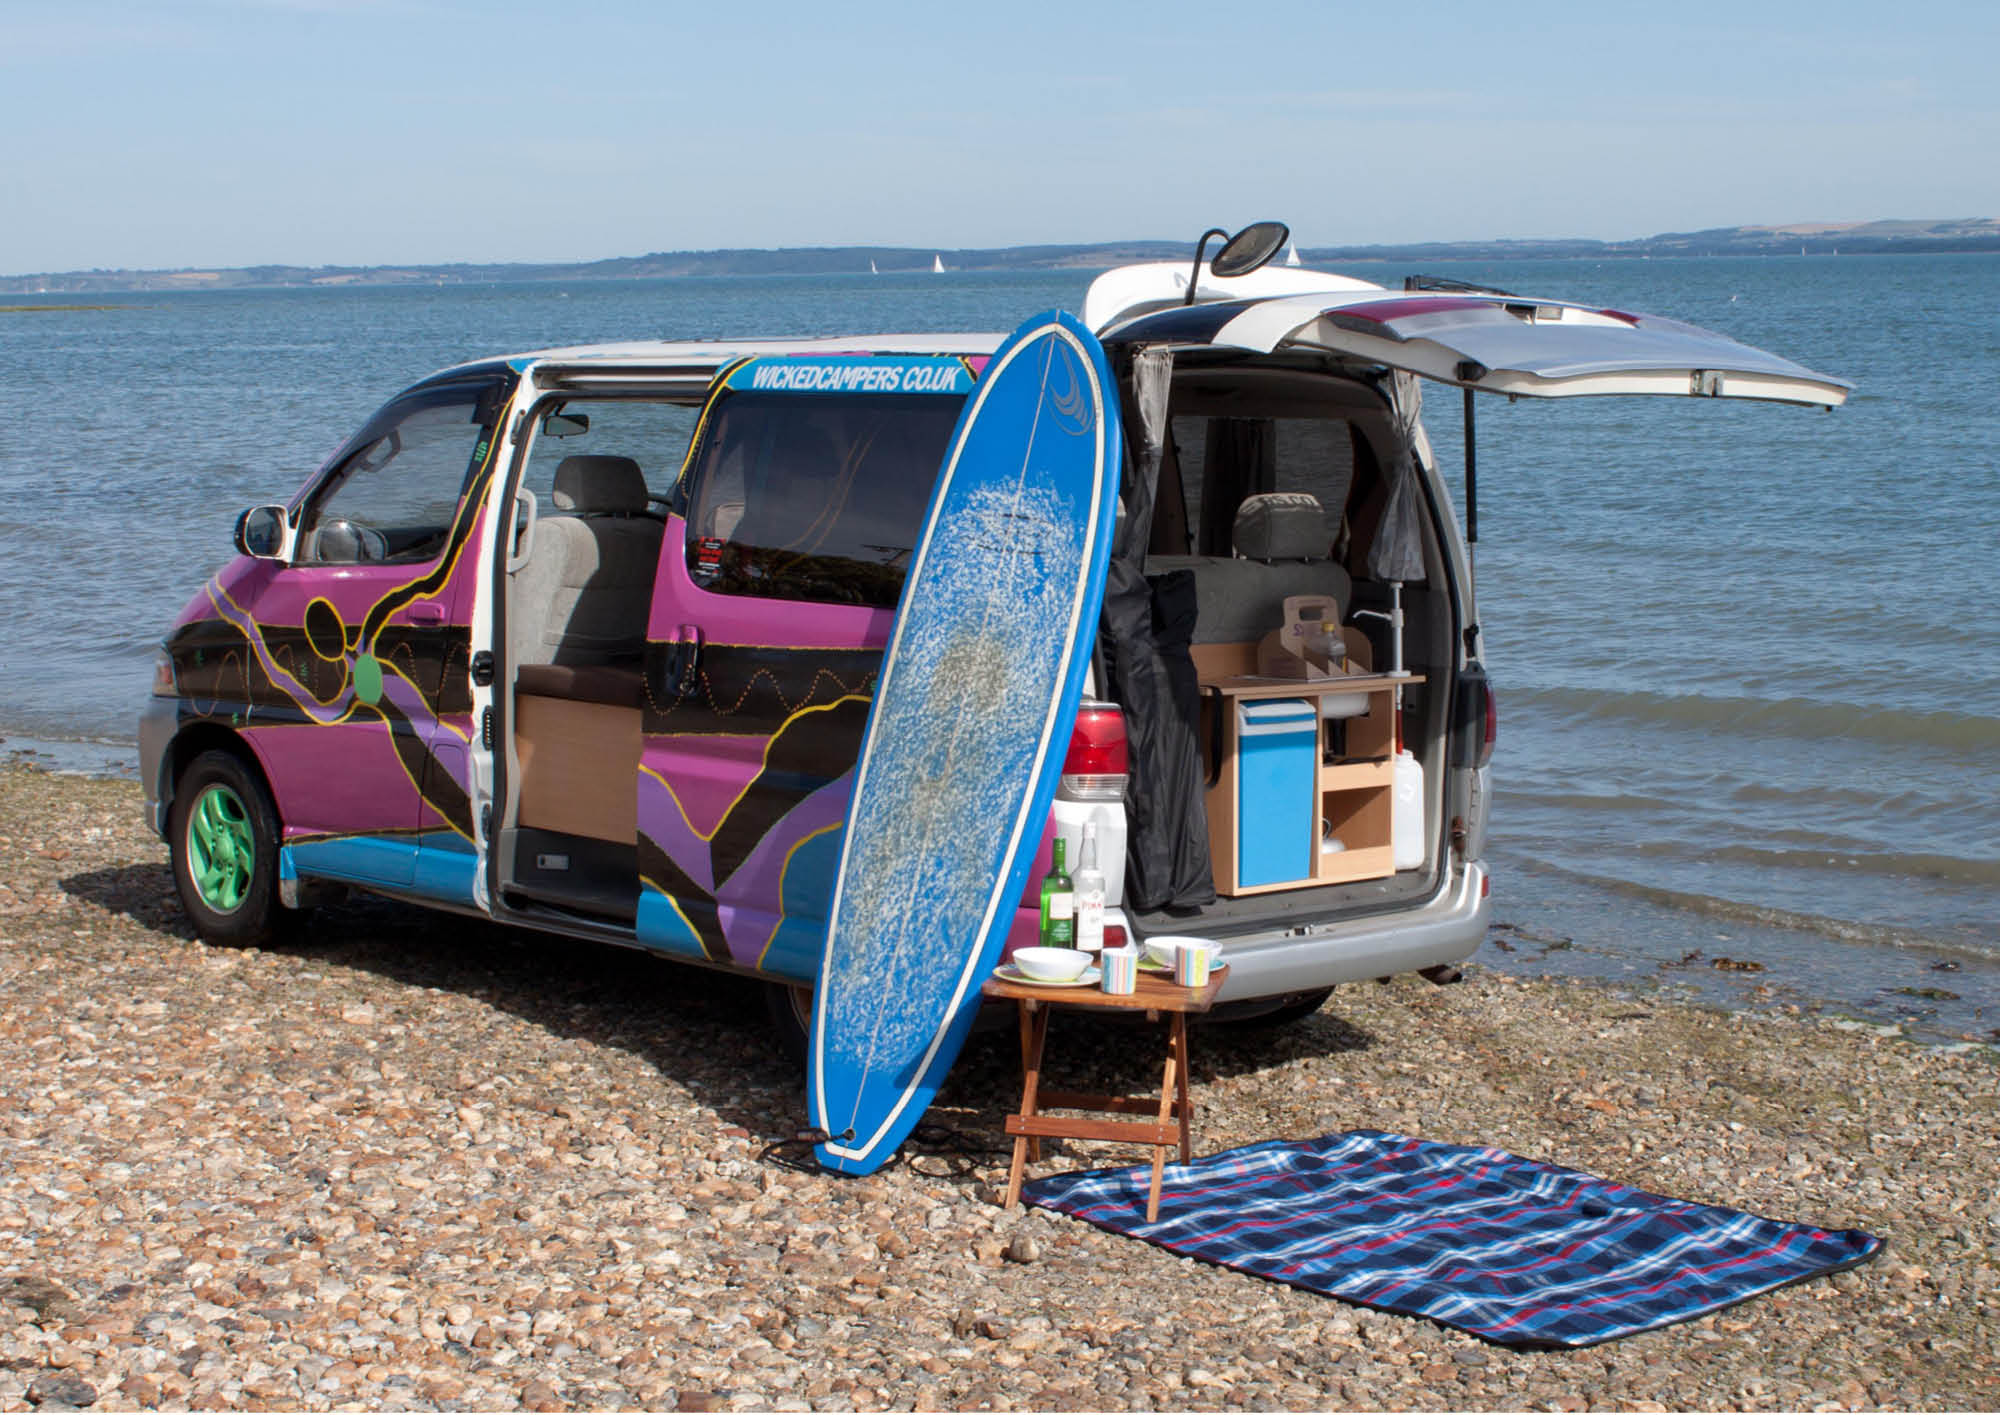 Wicked Campers: Have They Gone Too Far?